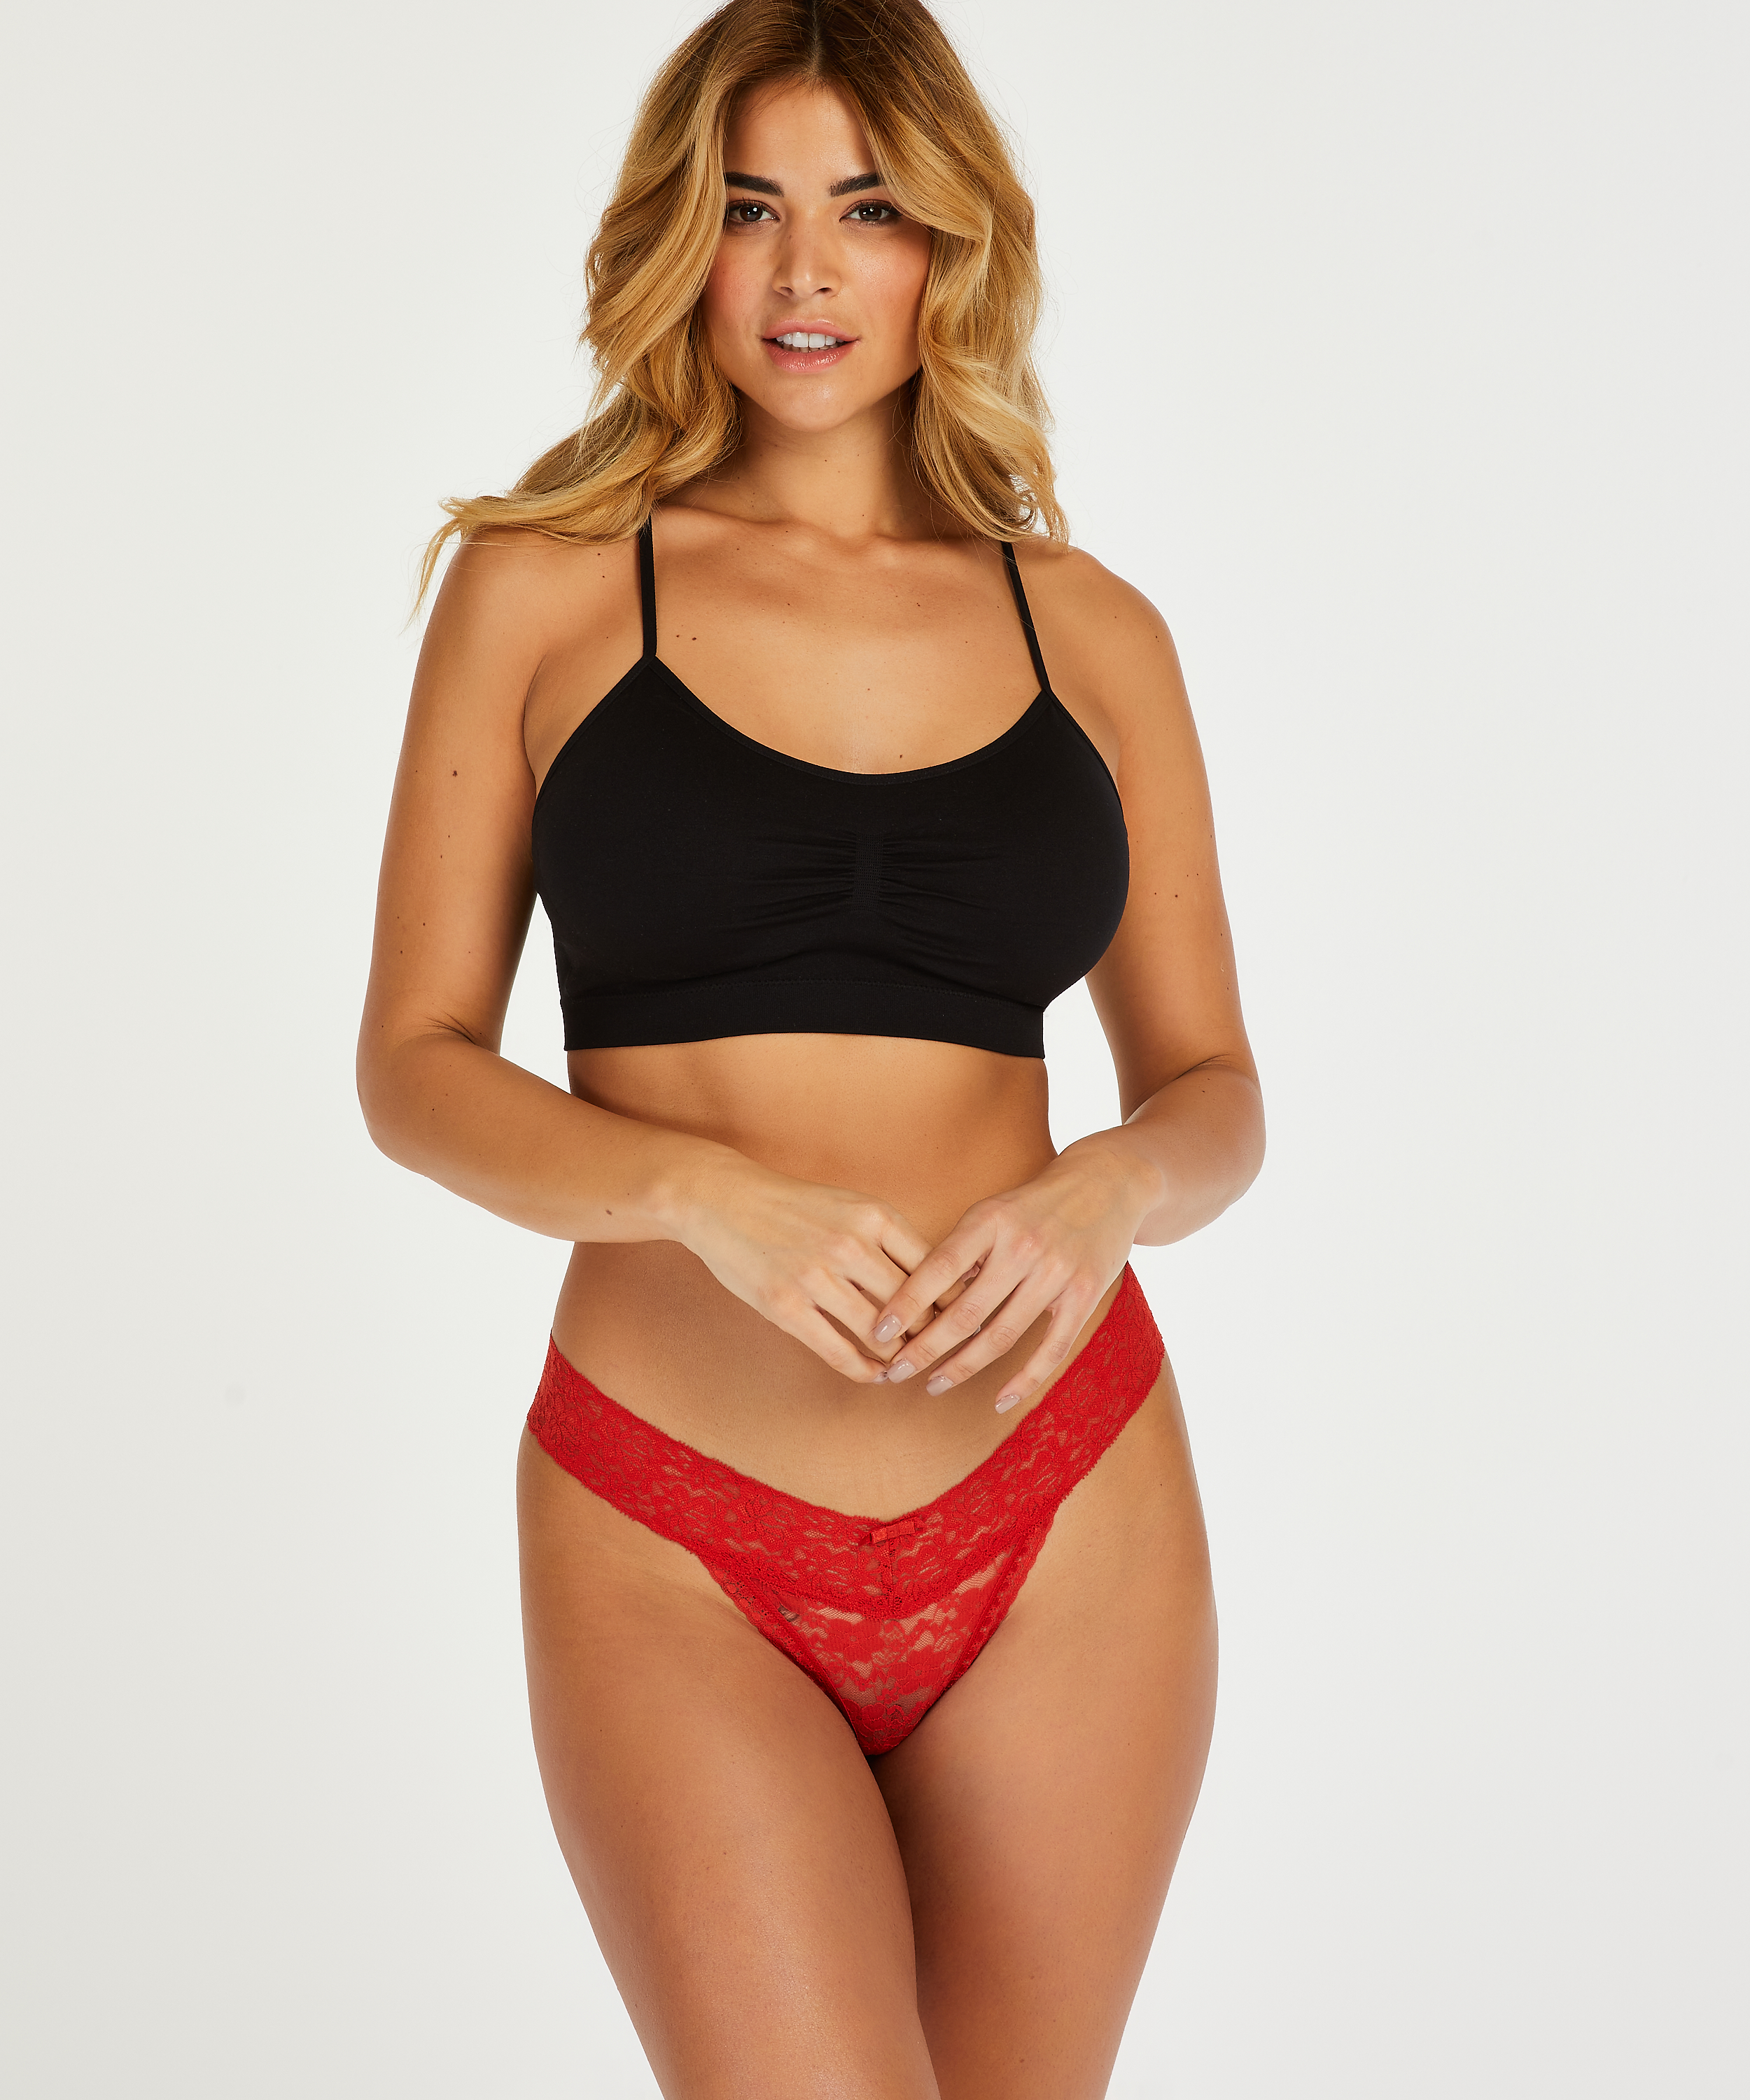 Floral Lace Thong, Red, main